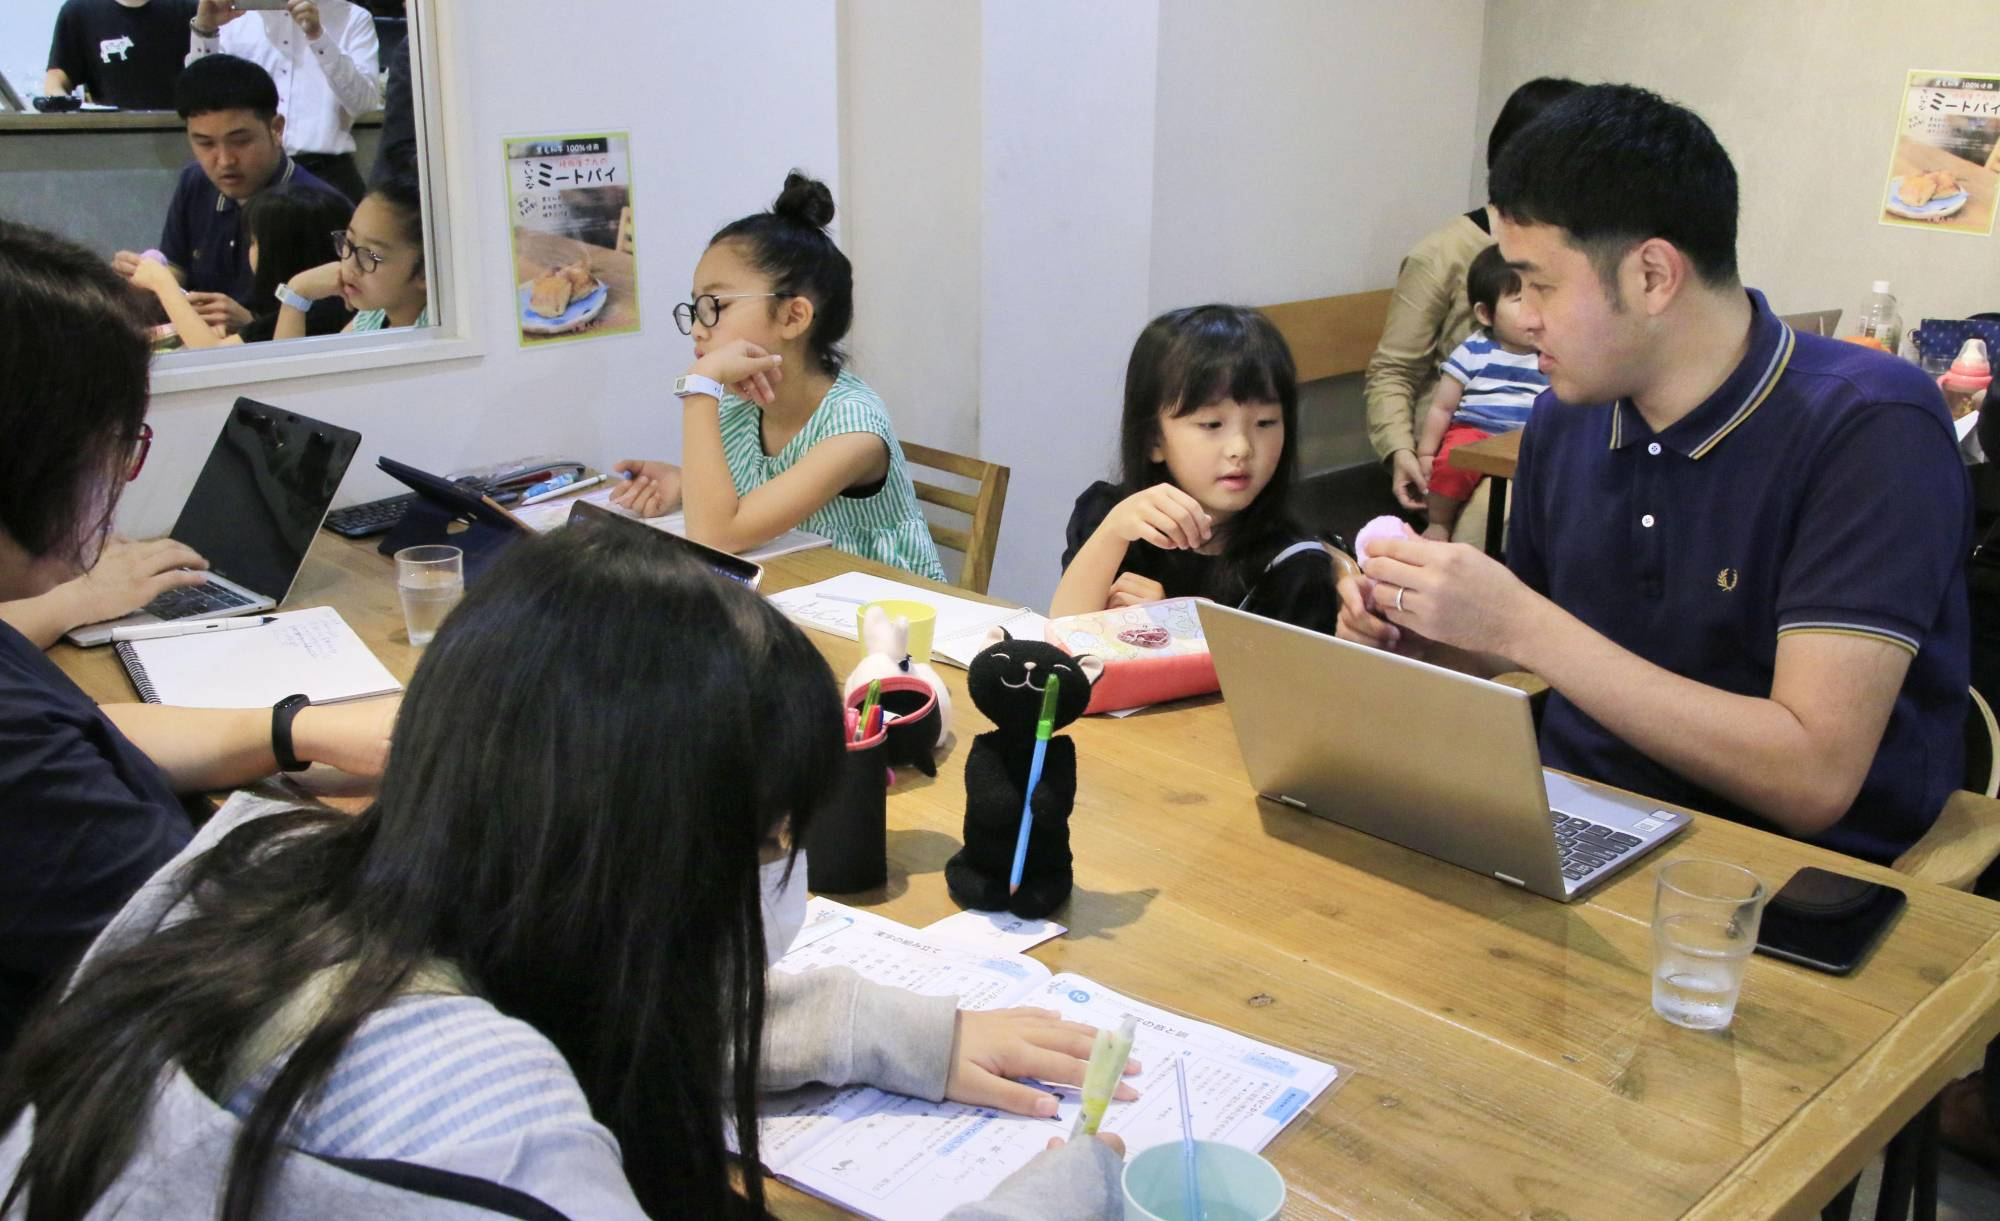 People participate in a demonstration for promoting child care during remote work at a cafe in Tokyo in July 2019. | KYODO